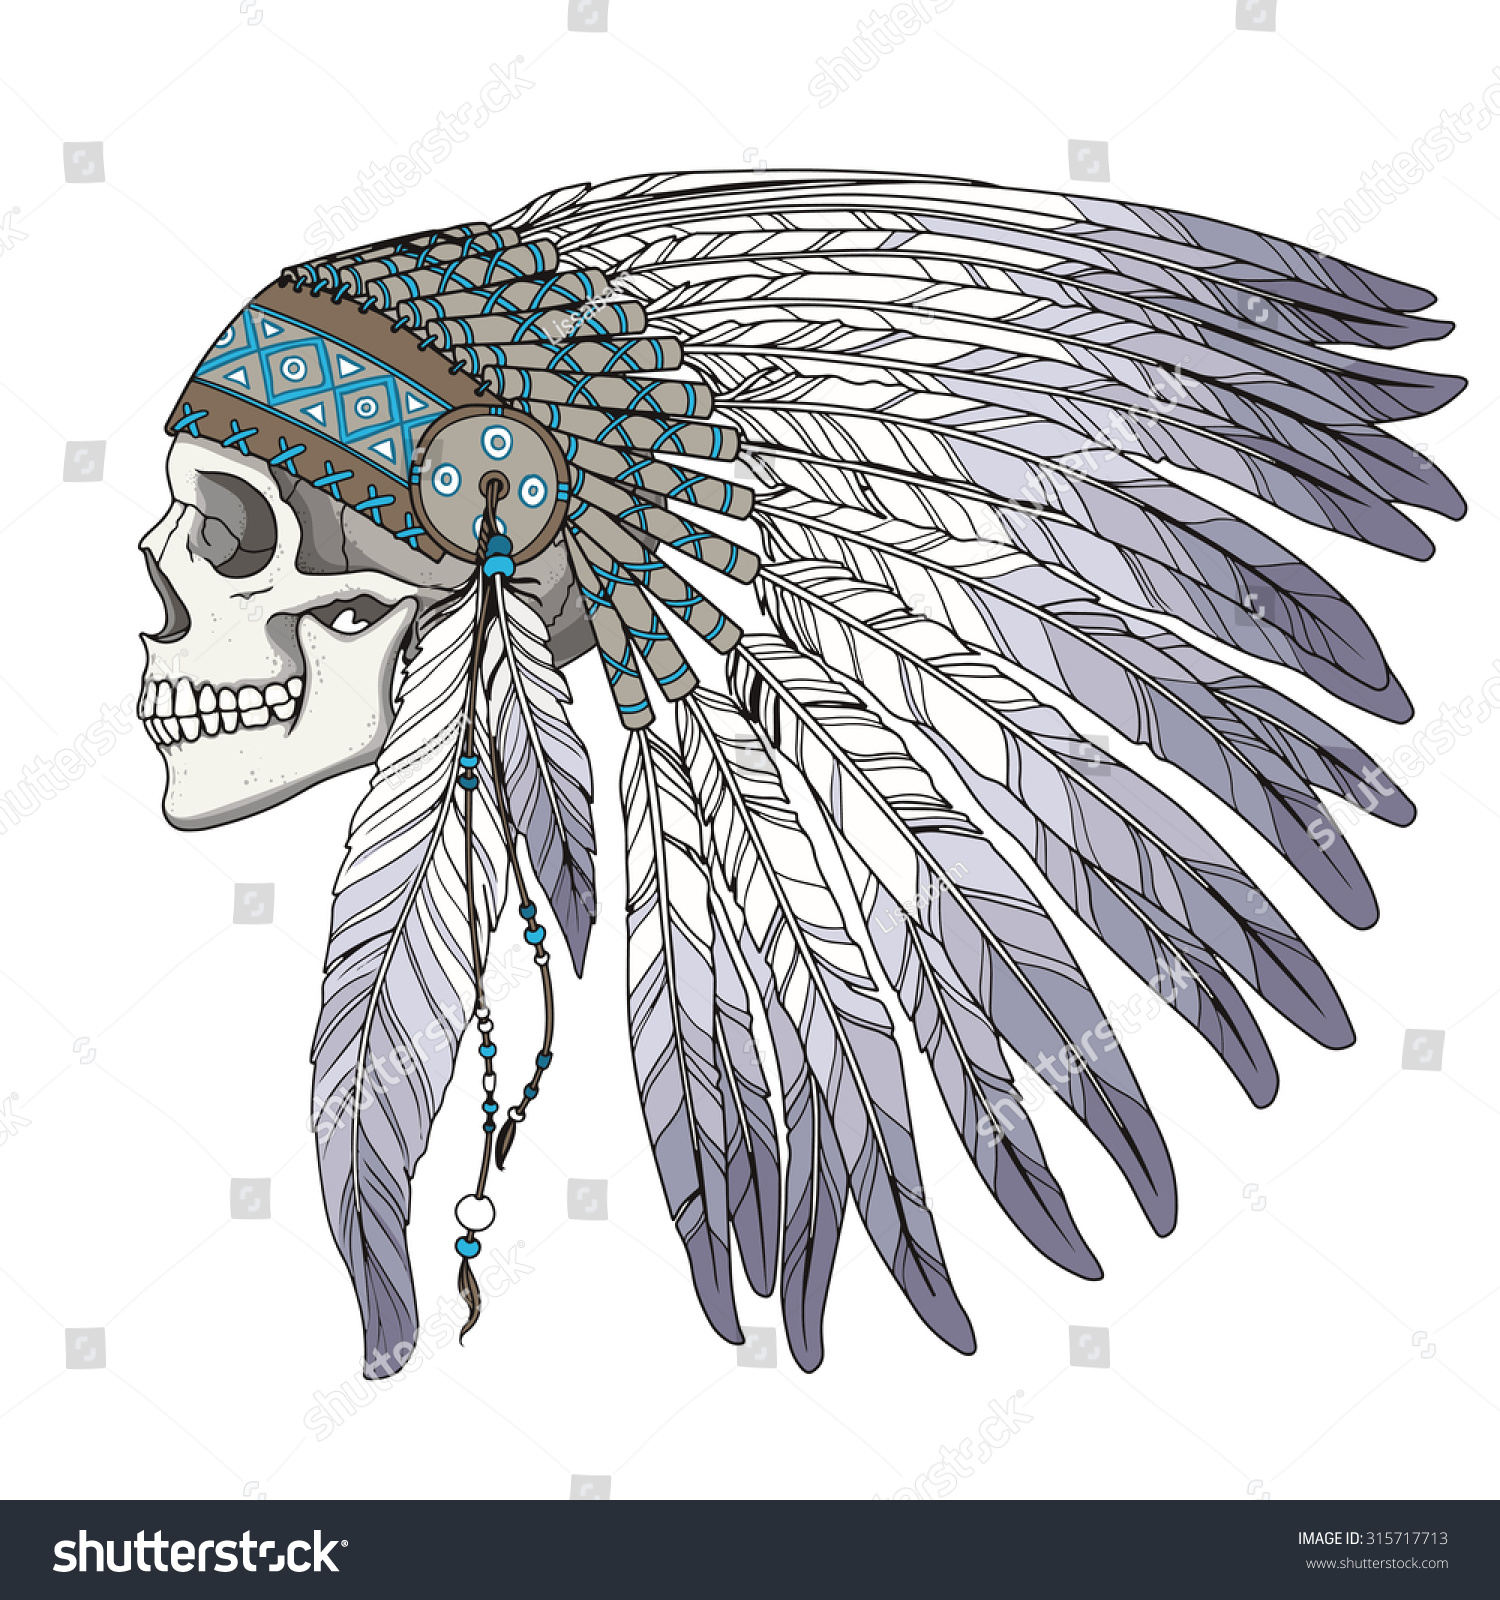 hight resolution of source image shutterstock com report indian headdress clipart